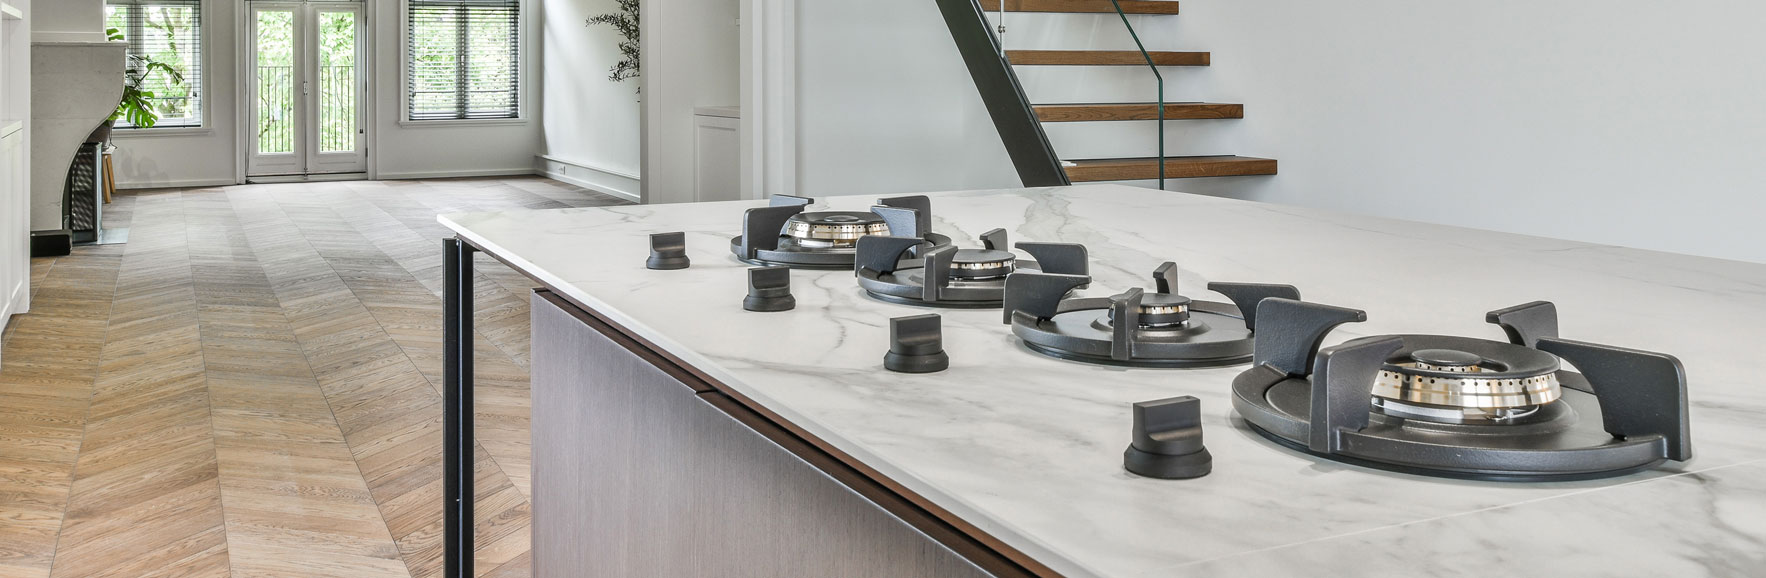 Neolith Pitt Cooking